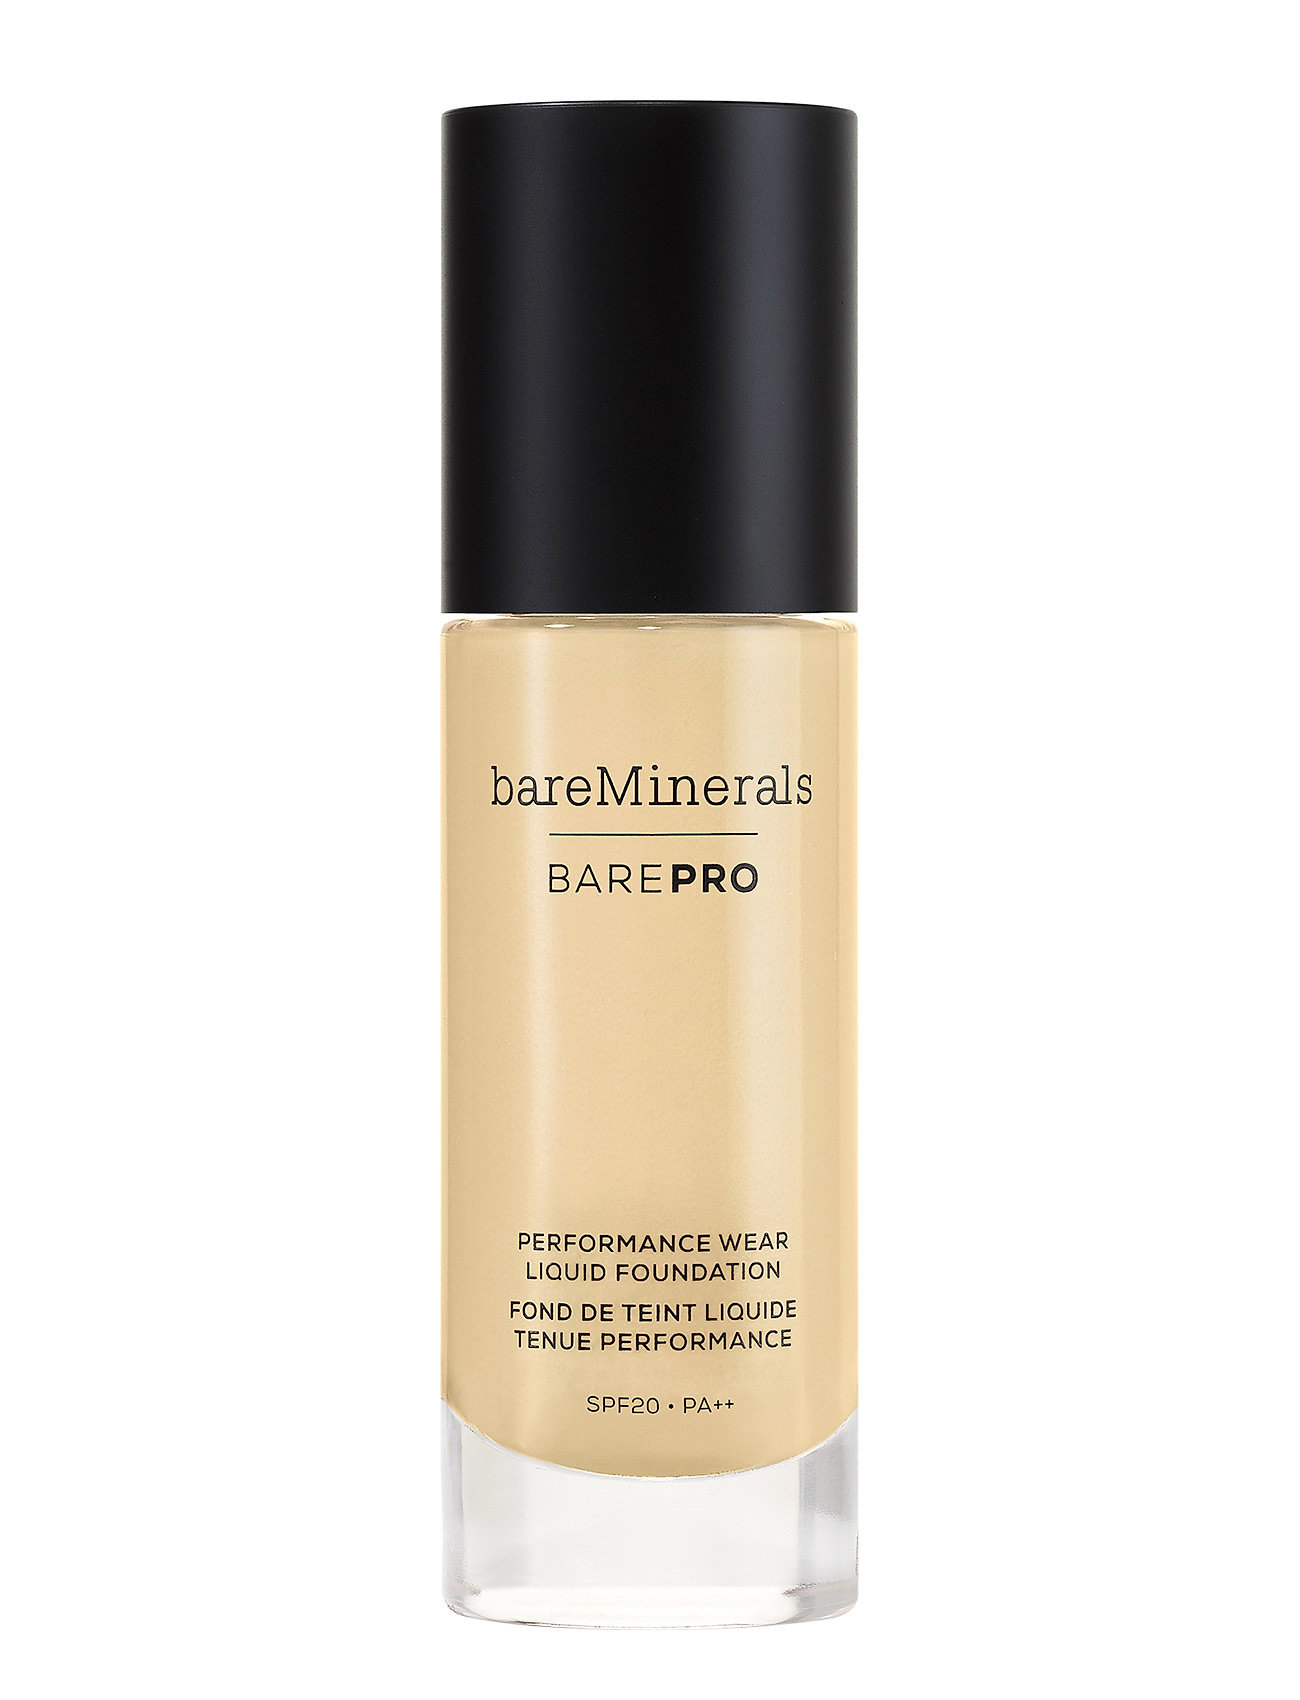 Image of Barepro Performance Wear Liquid Foundation Spf 20 Foundation Makeup BareMinerals (3067521613)